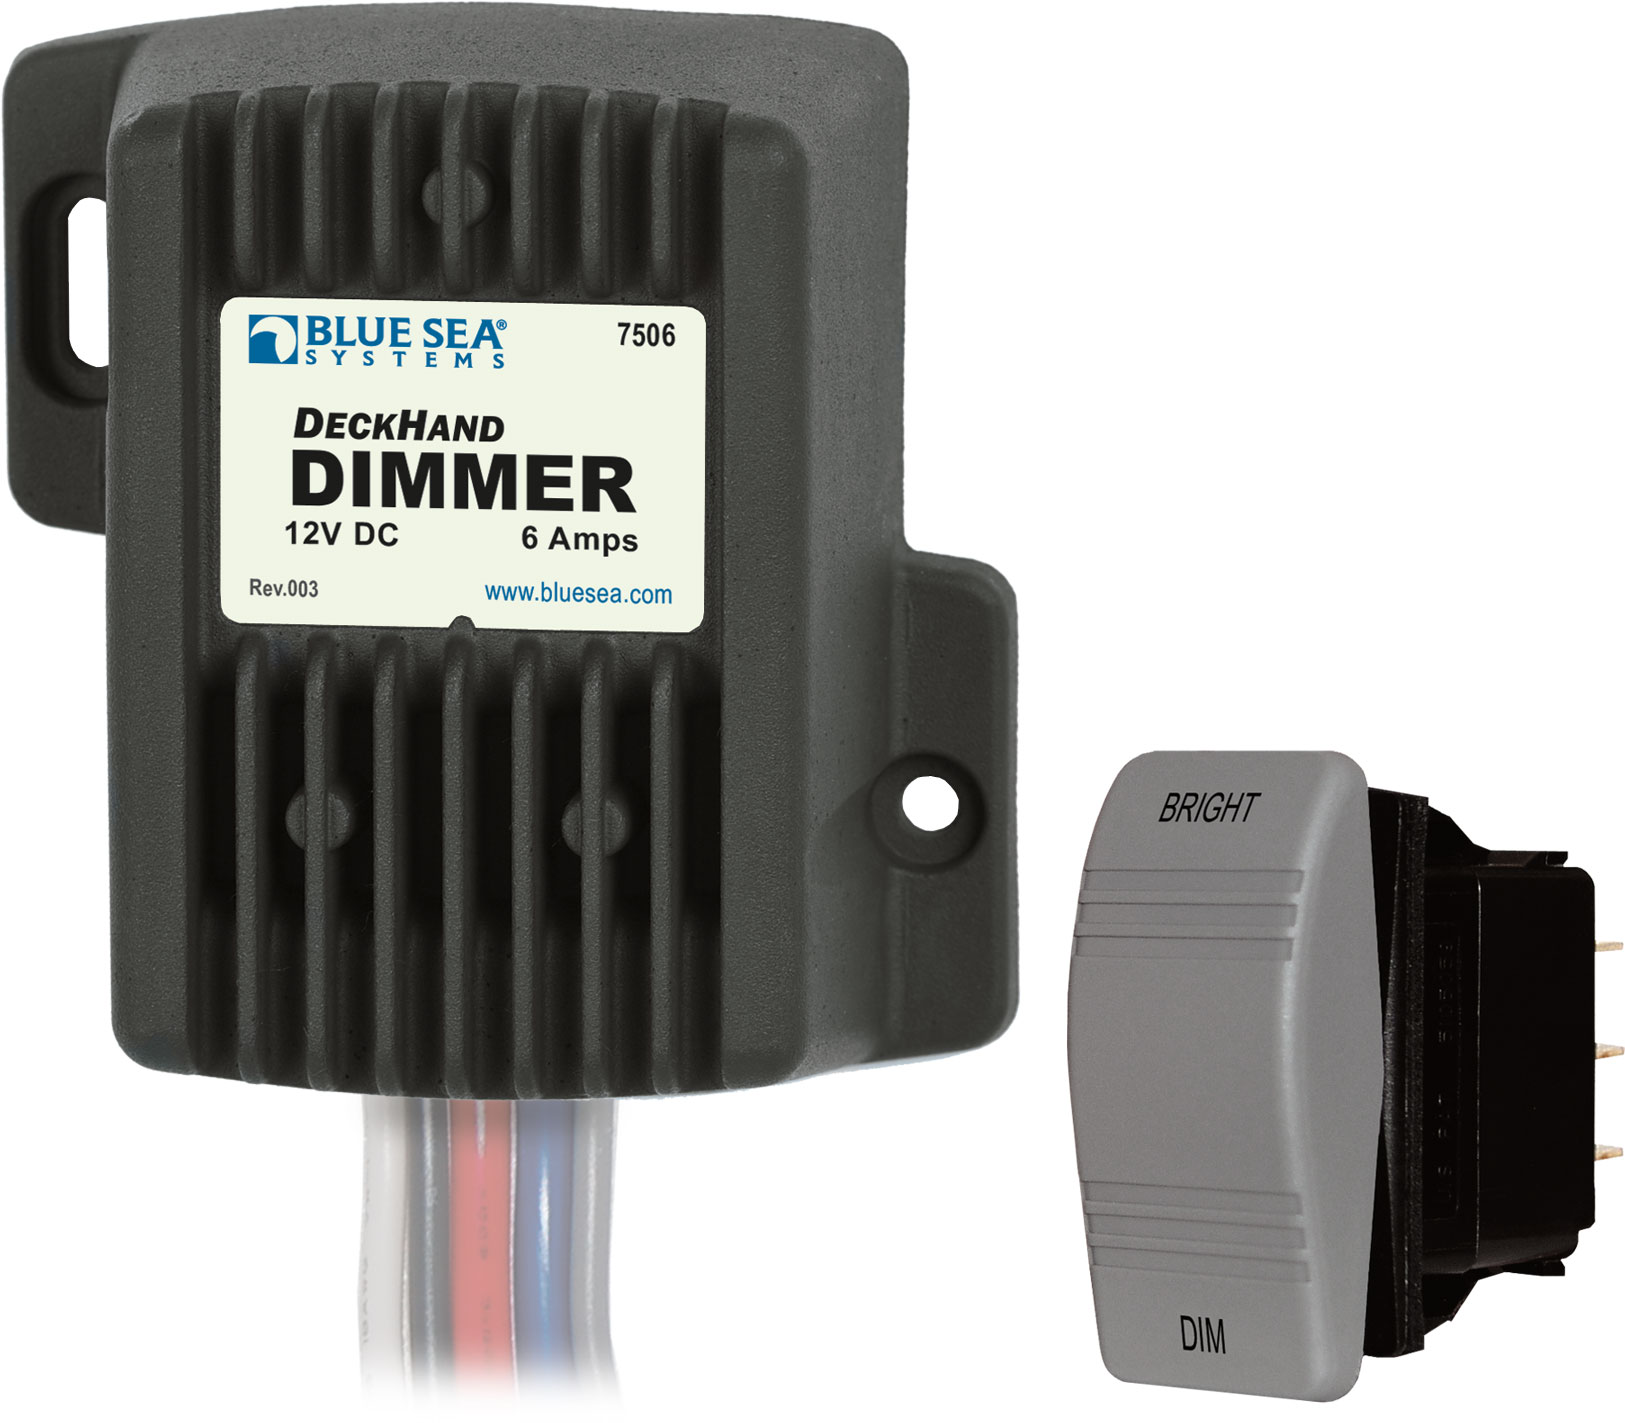 Deckhand Dimmer 12v Dc 6a Blue Sea Systems Solenoid Wiring Diagram Product Image